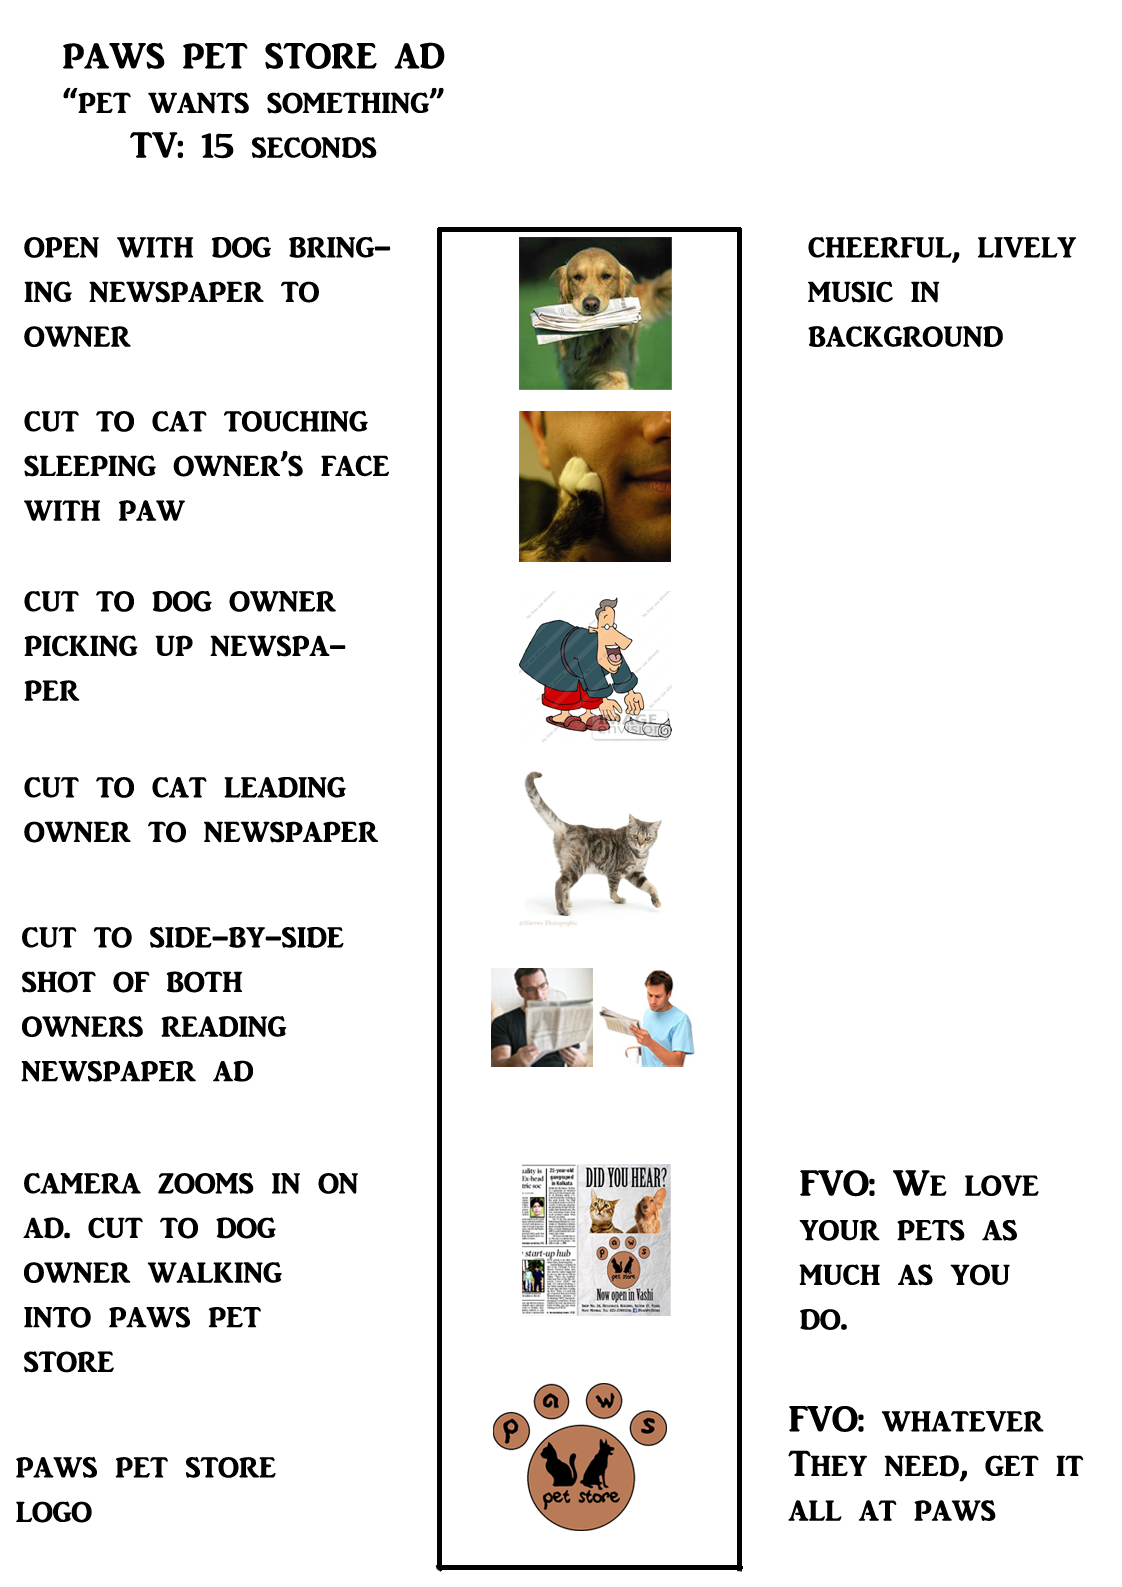 paws pet store tv storyboard